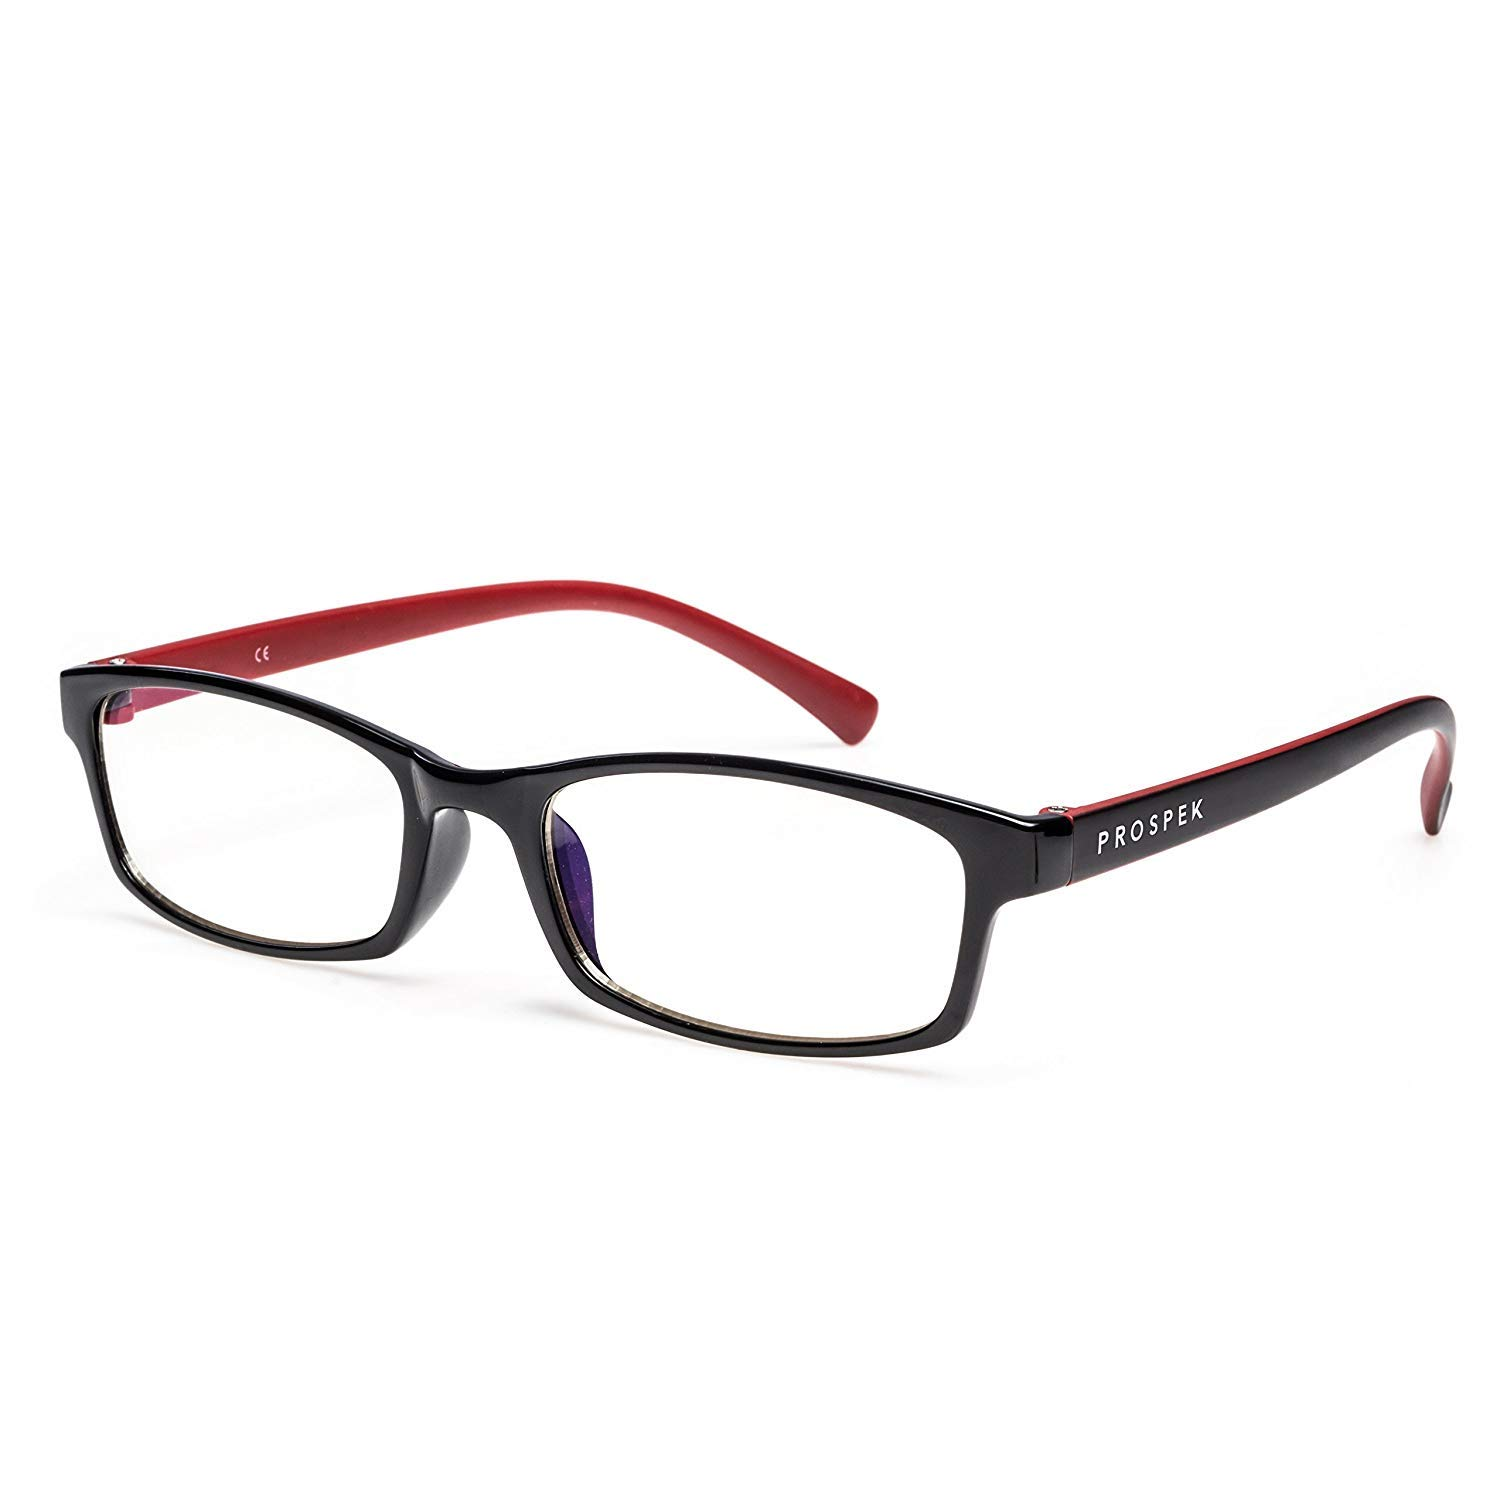 PROSPEK - Computer Glasses - Blue Light Blocking Glasses - Professional (+0.00 (No Magnification) | Regular Size, Red and Black) by Prospek